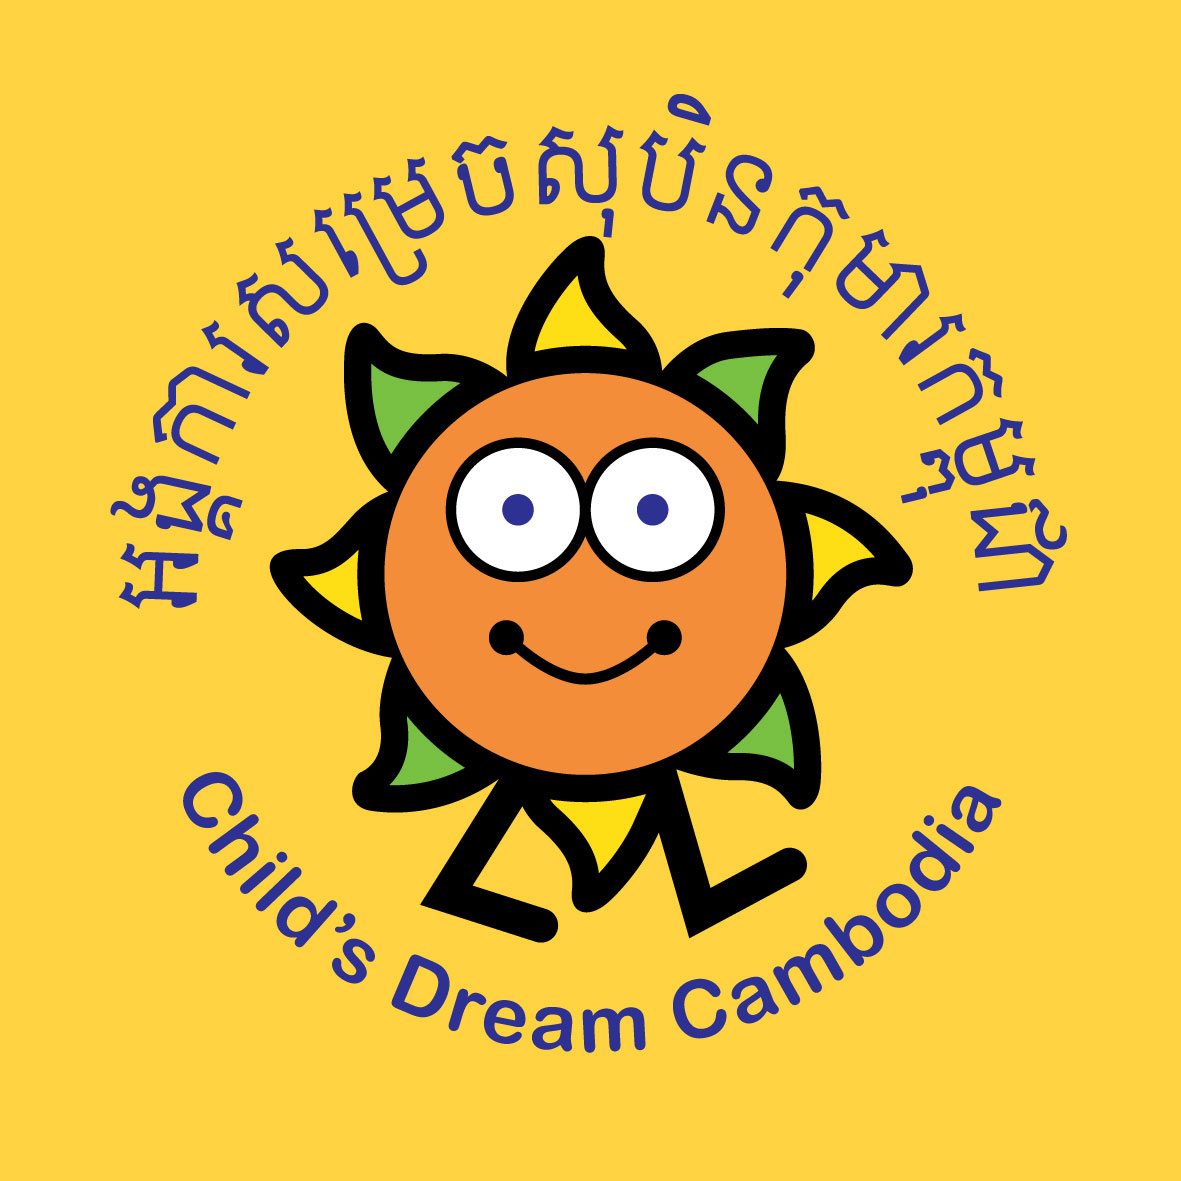 Child's Dream Cambodia